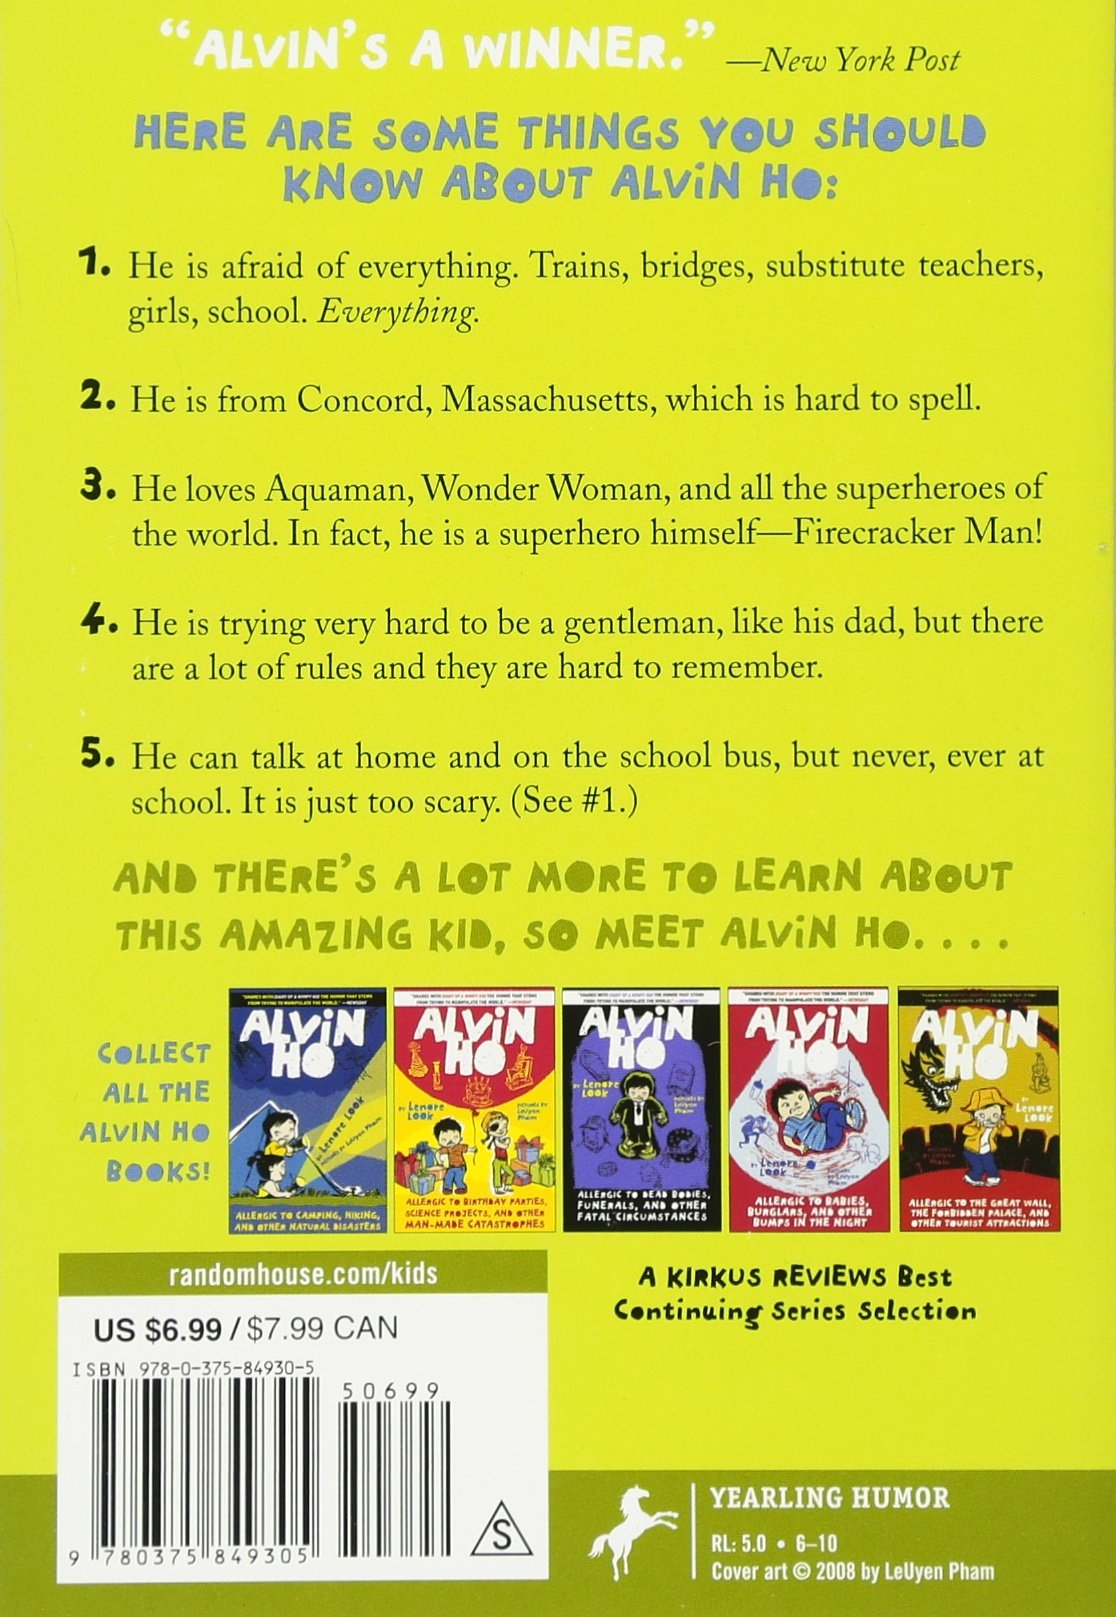 Amazon.com: Alvin Ho: Allergic to Girls, School, and Other Scary Things  (9780375849305): Lenore Look, LeUyen Pham: Books